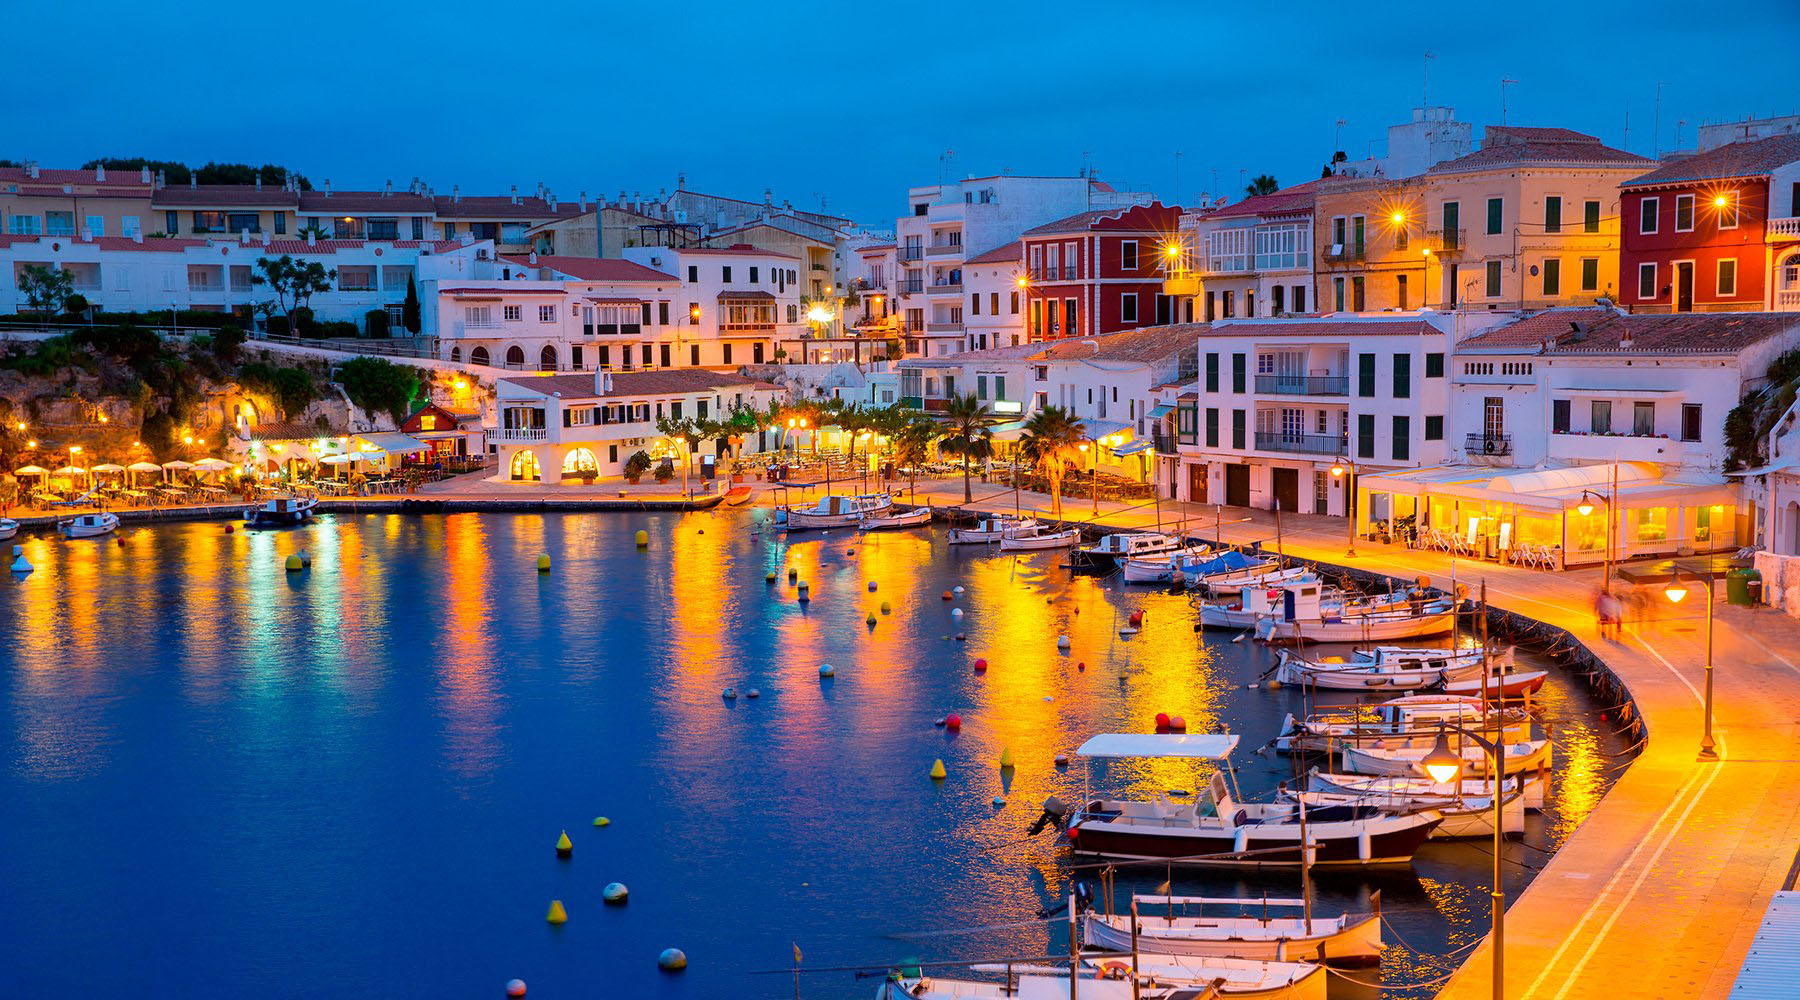 7 NIGHT BALEARIC ISLANDS & ITALY VOYAGE